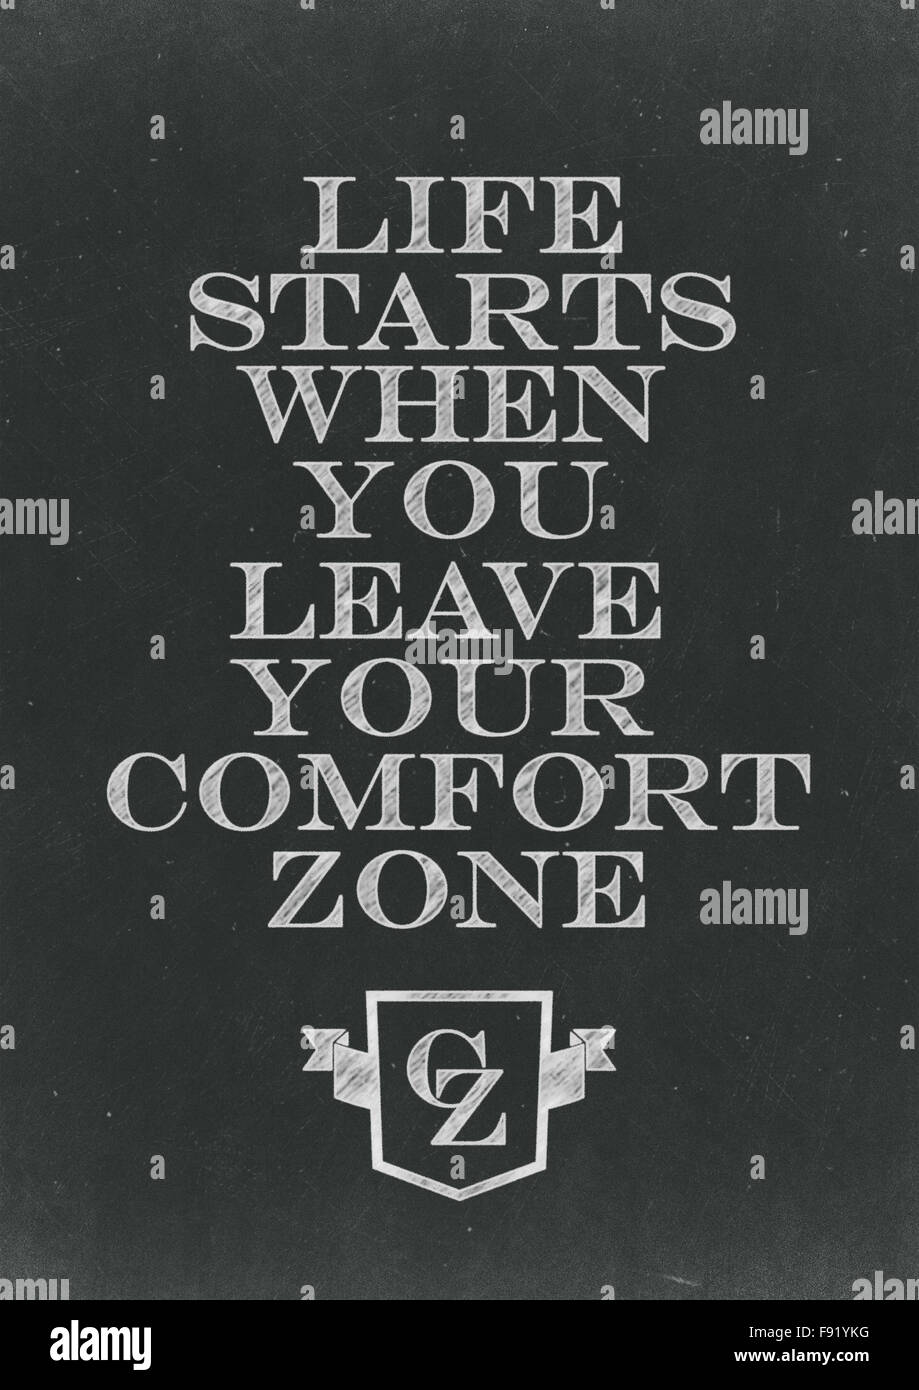 Life Starts When You Leave Your Comfort Zone Hand Written On A Chalkboard - Stock Image